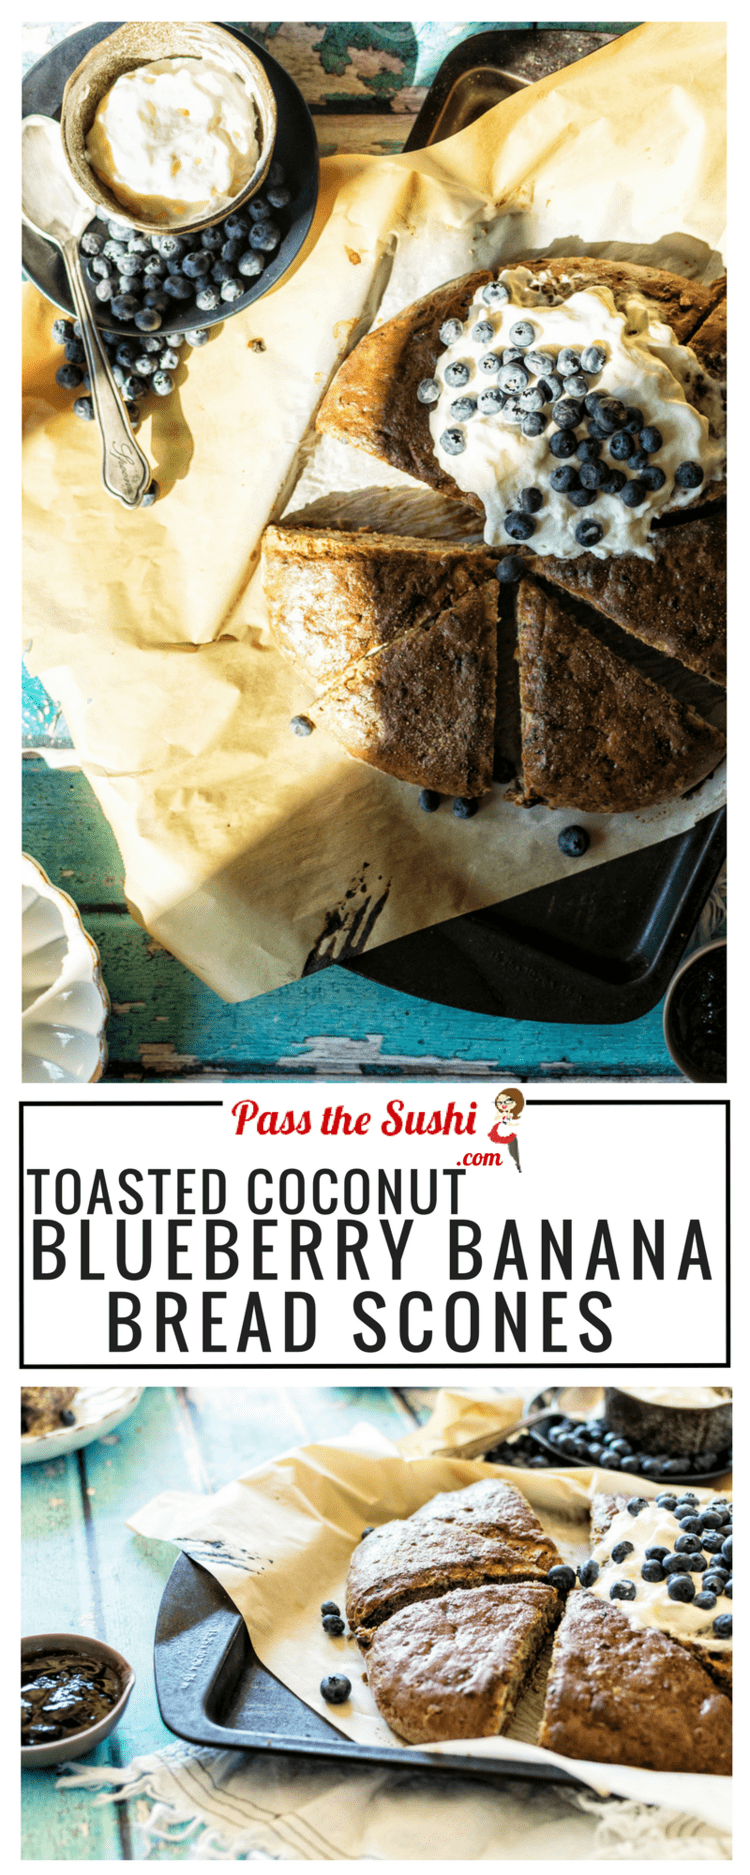 Looking to satisfy the sweet tooth, but stay a little on the healthy side? This recipe for Toasted Coconut Blueberry Banan Bread Scones is a high-protein treat that you'll love!